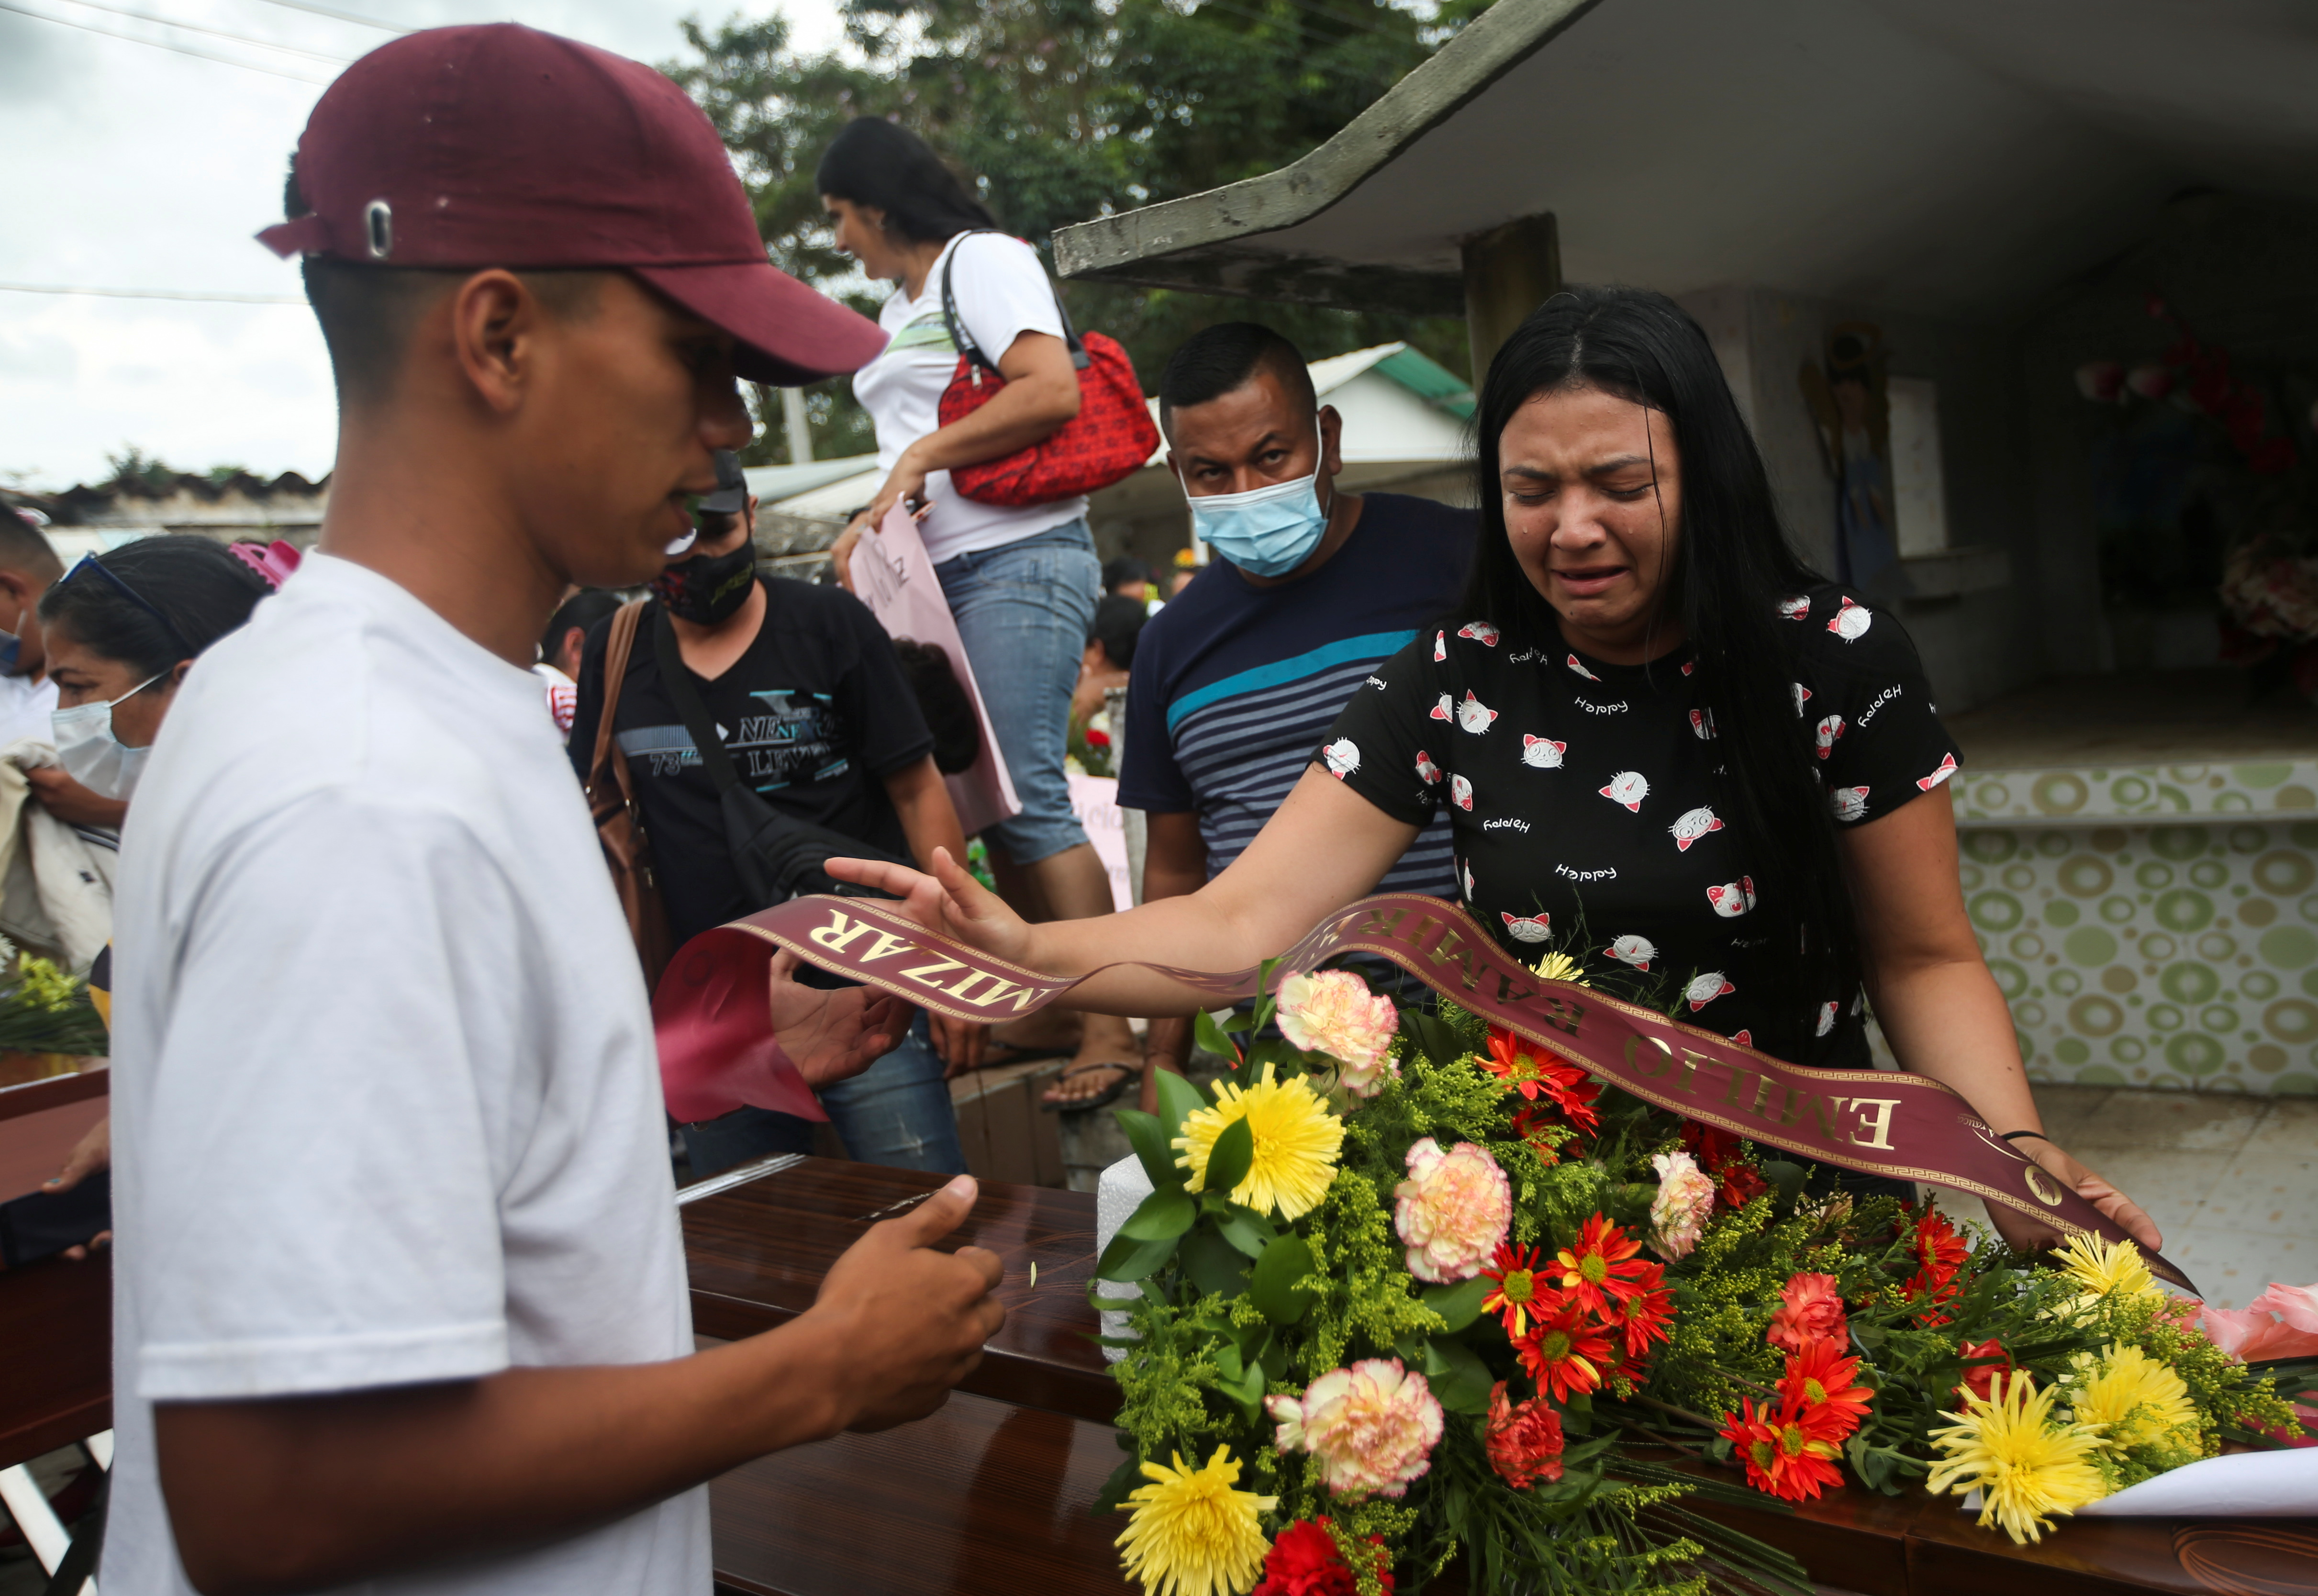 A woman cries next to a coffin with the body of a Venezuelan citizen killed in the middle of the operations of the Bolivarian National Armed Forces, according to his relatives, before being buried in the cemetery of Arauquita, Colombia March 29, 2021. REUTERS/Luisa Gonzalez